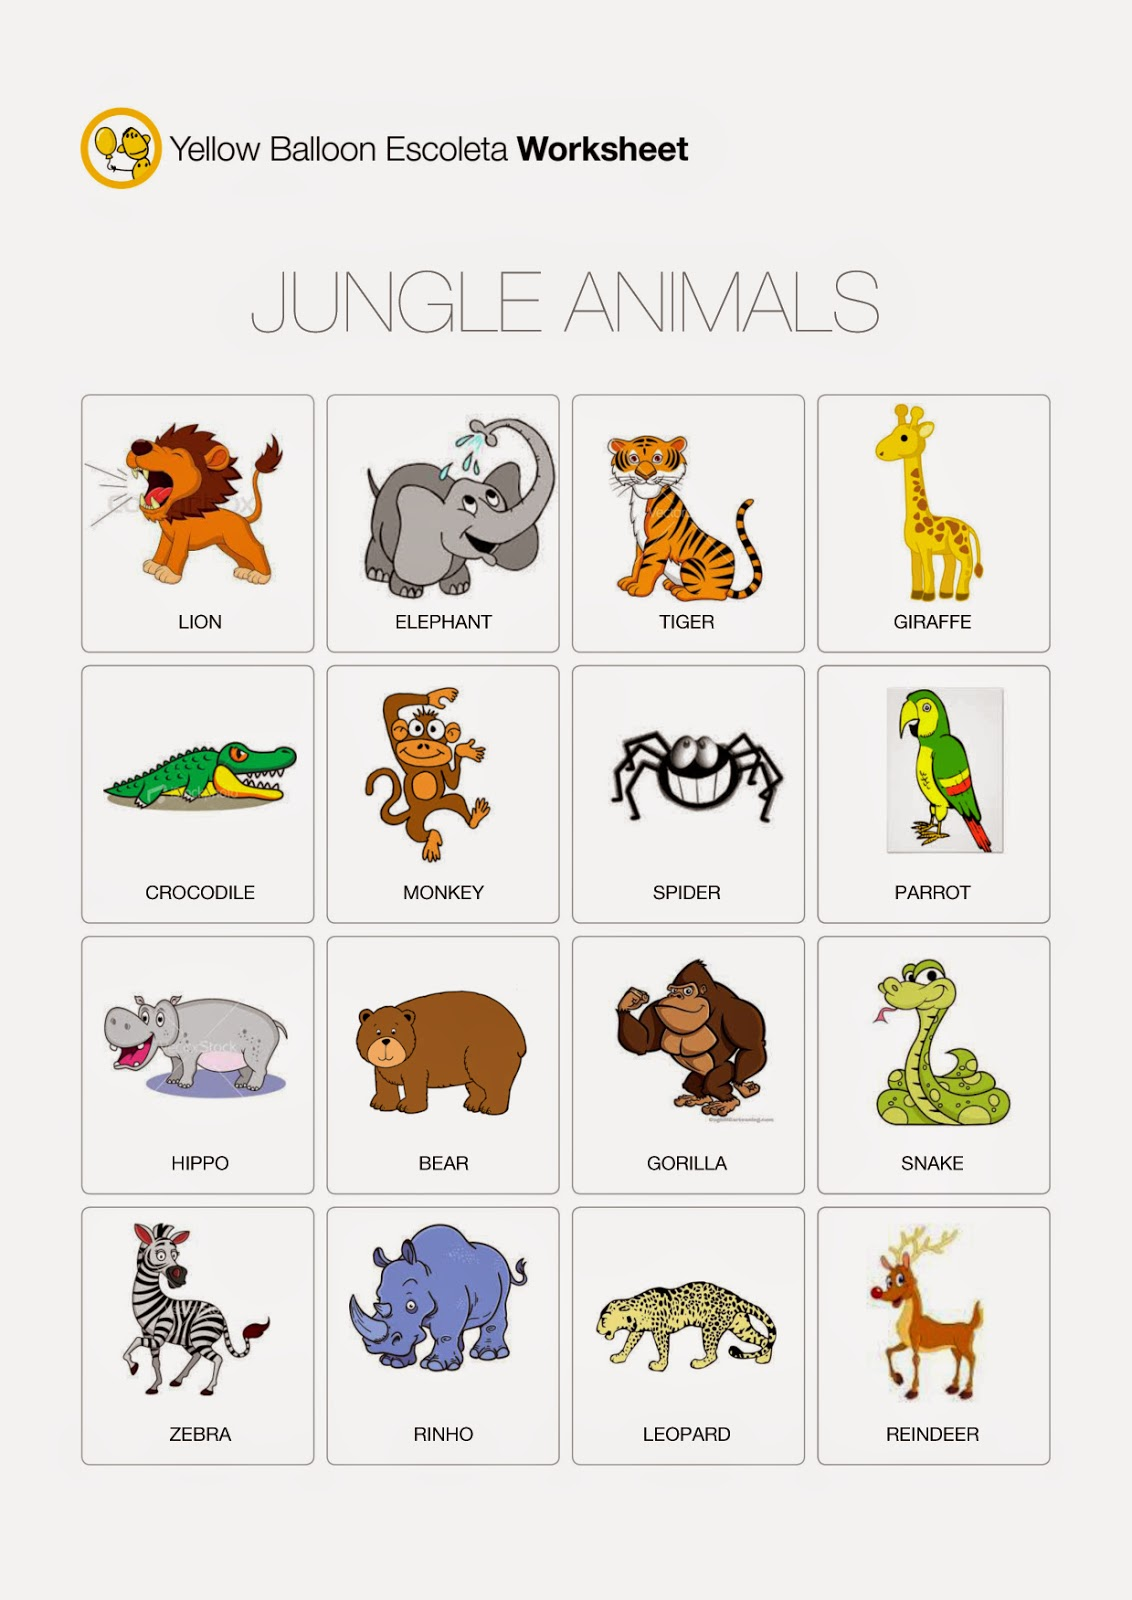 Yellow Balloon Escoleta: JUNGLE ANIMALS Worksheet